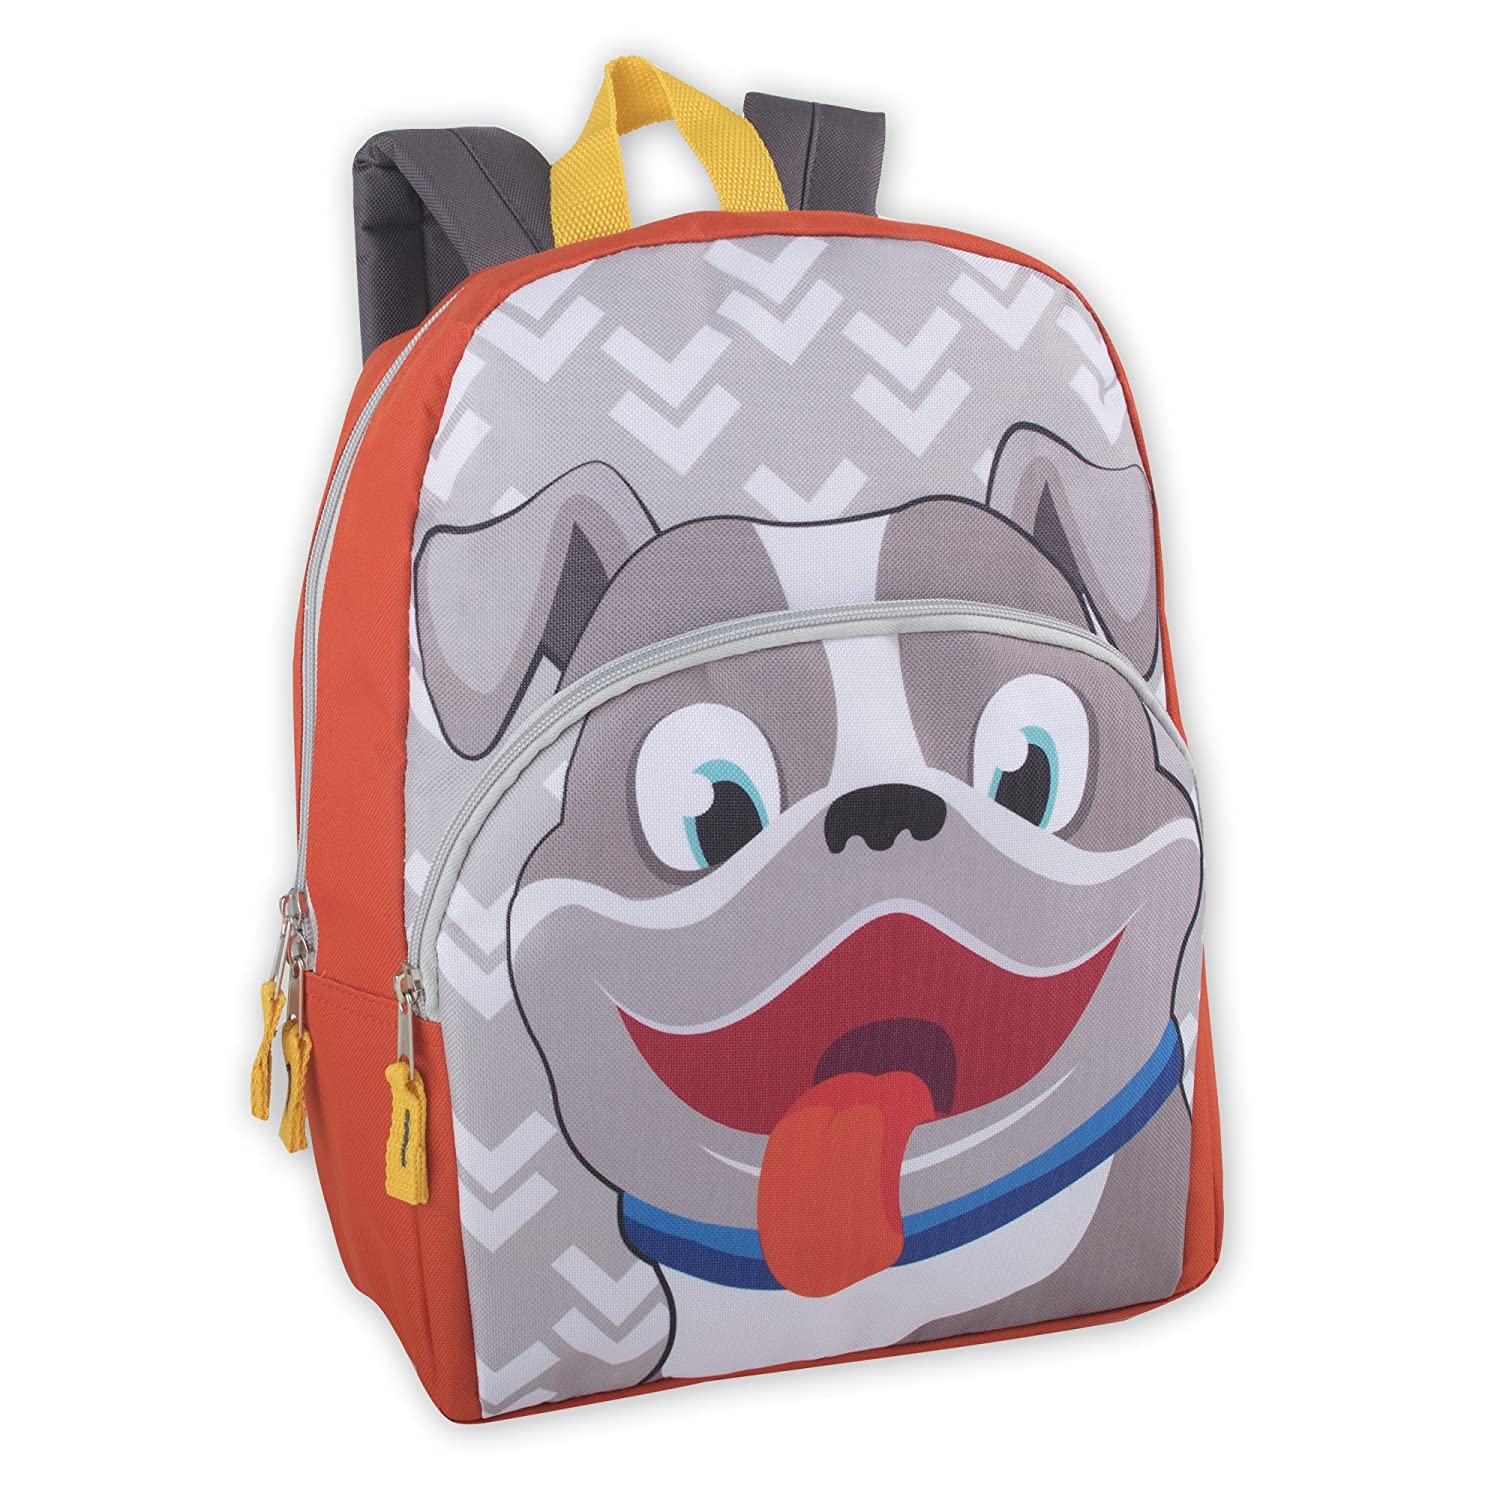 Animal Friends Critter Backpacks With Reinforced Straps (PUPPY)